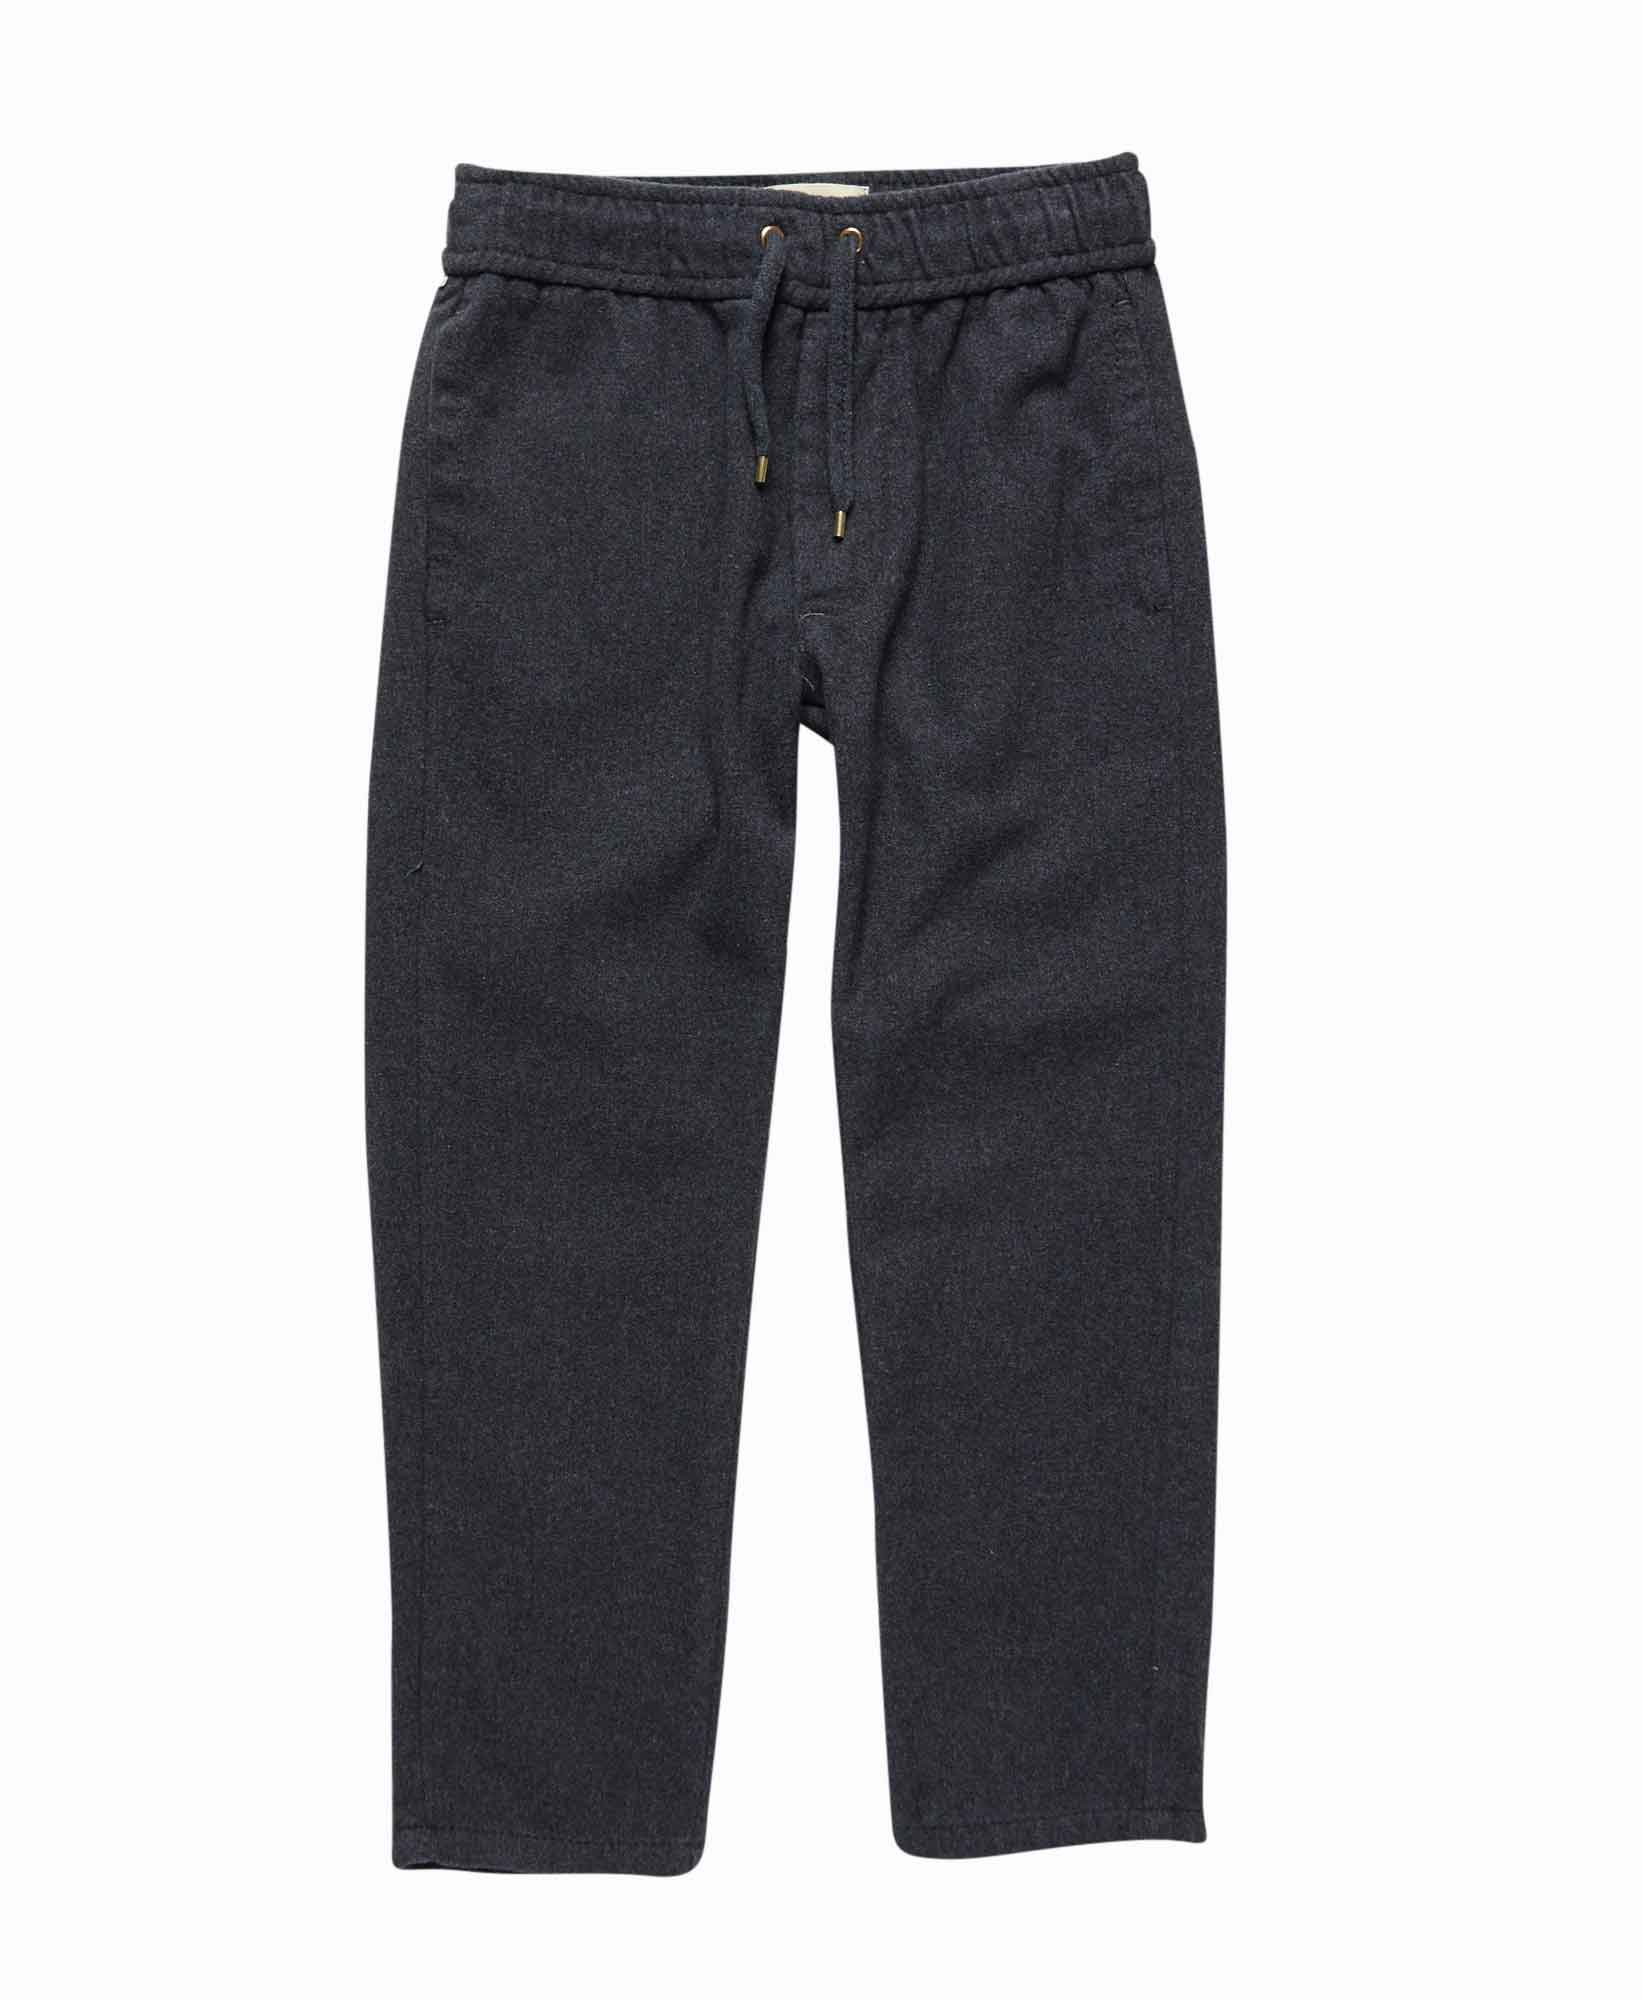 Bellerose Pharel Drawstring Pants